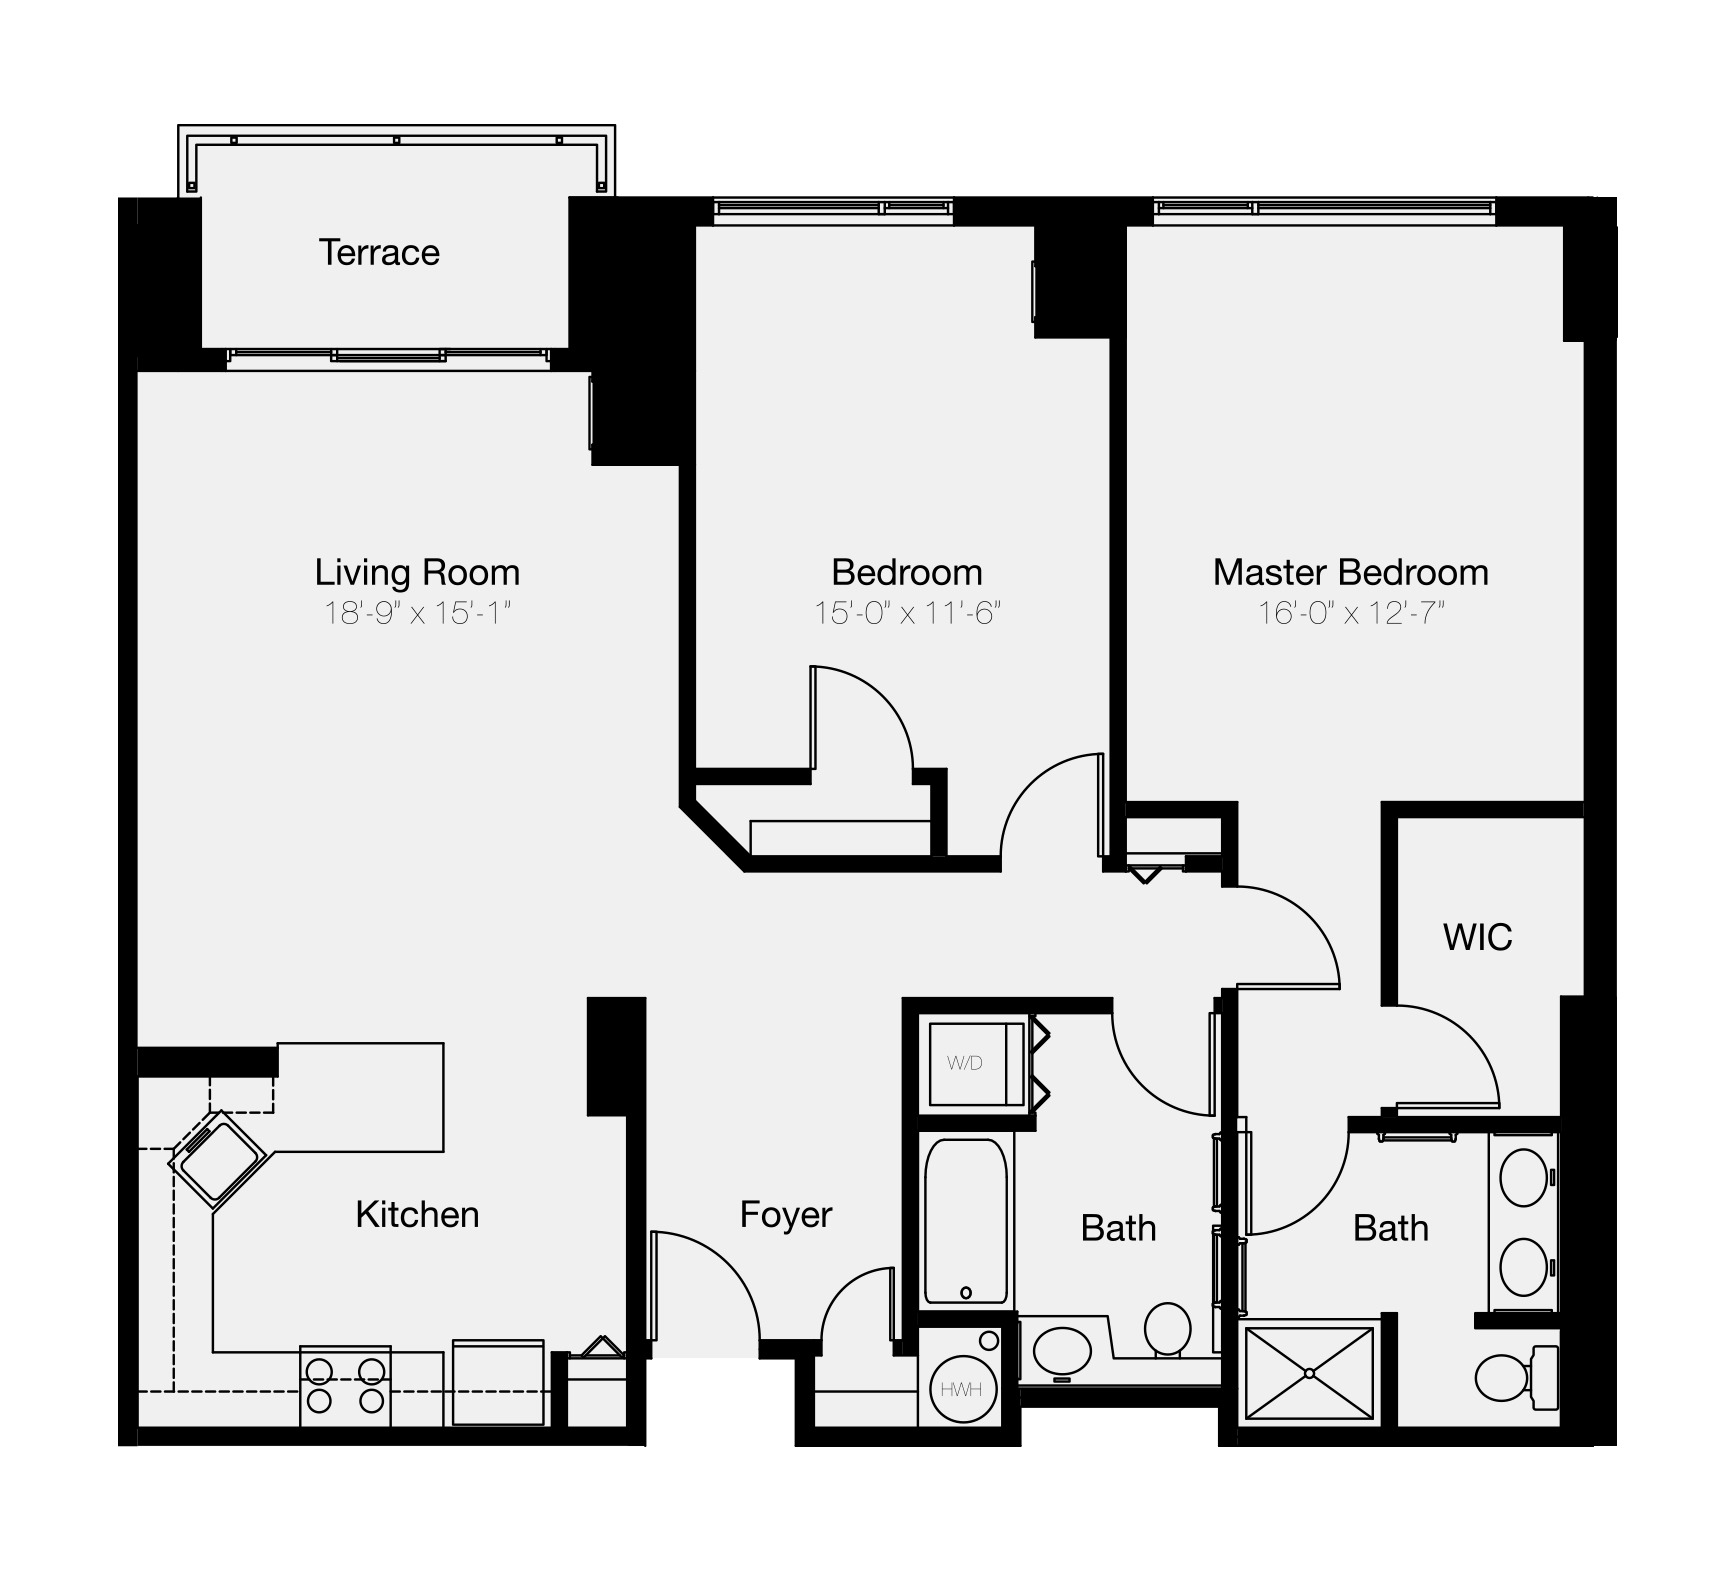 Two-bedroom floor plan of luxury Philadelphia condo for sale